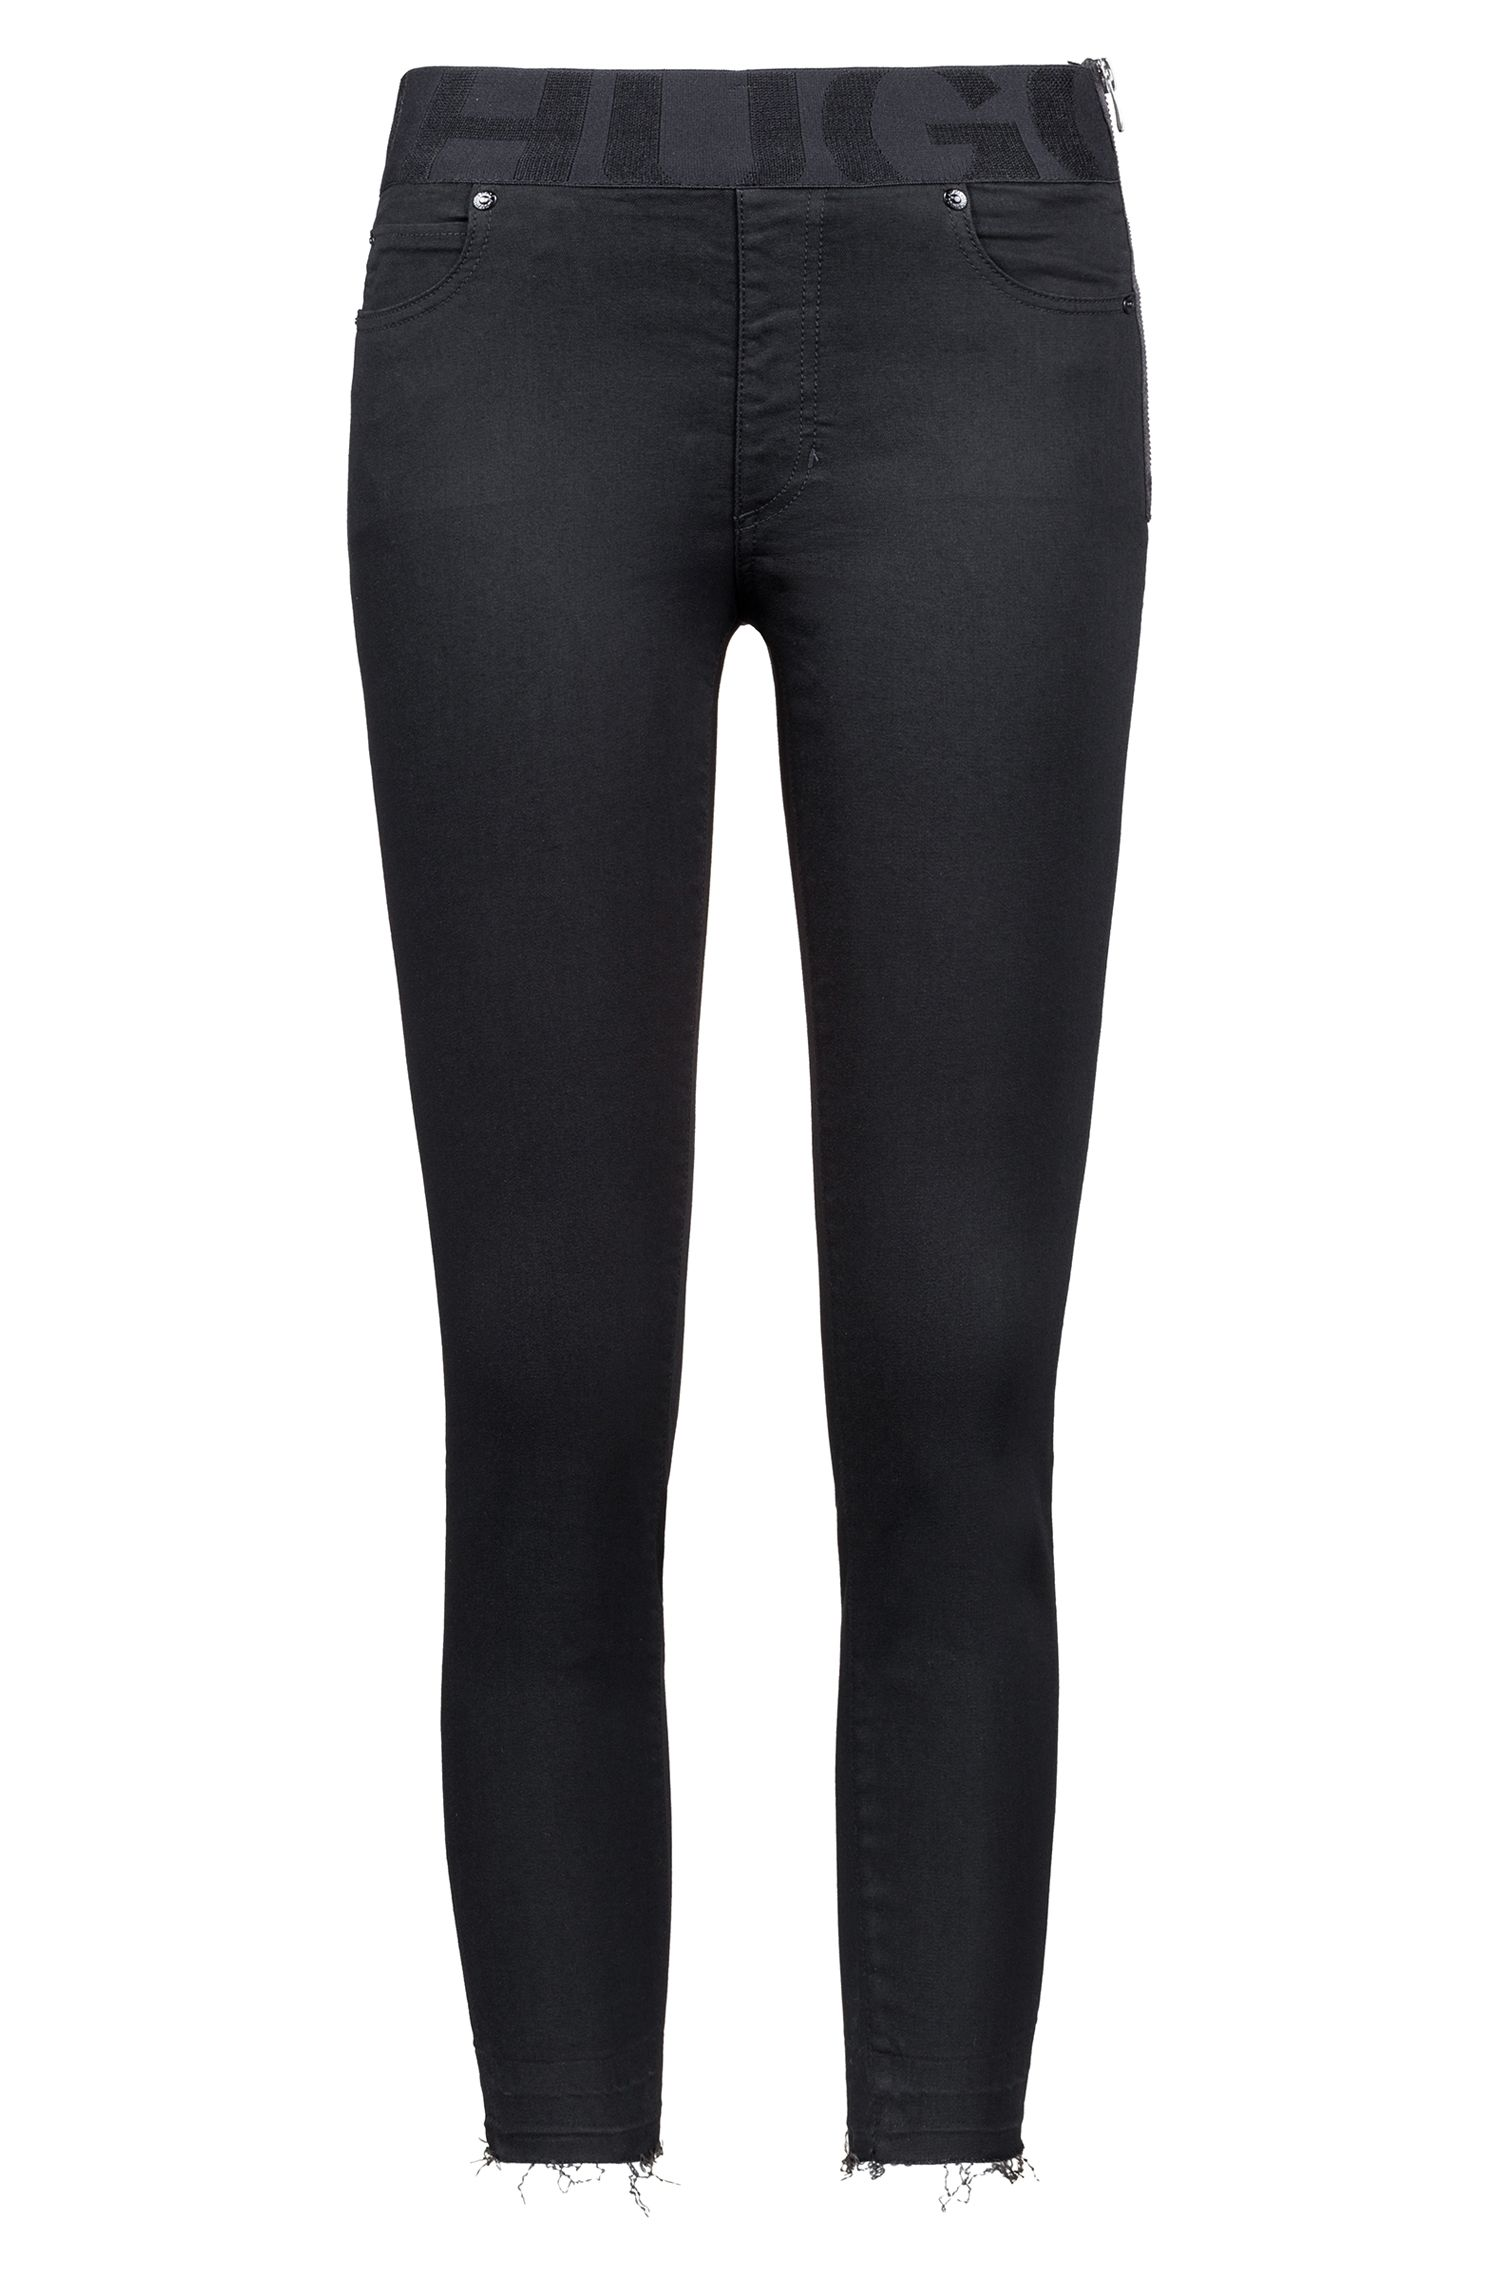 Black skinny-fit jeans with elastic logo waistband